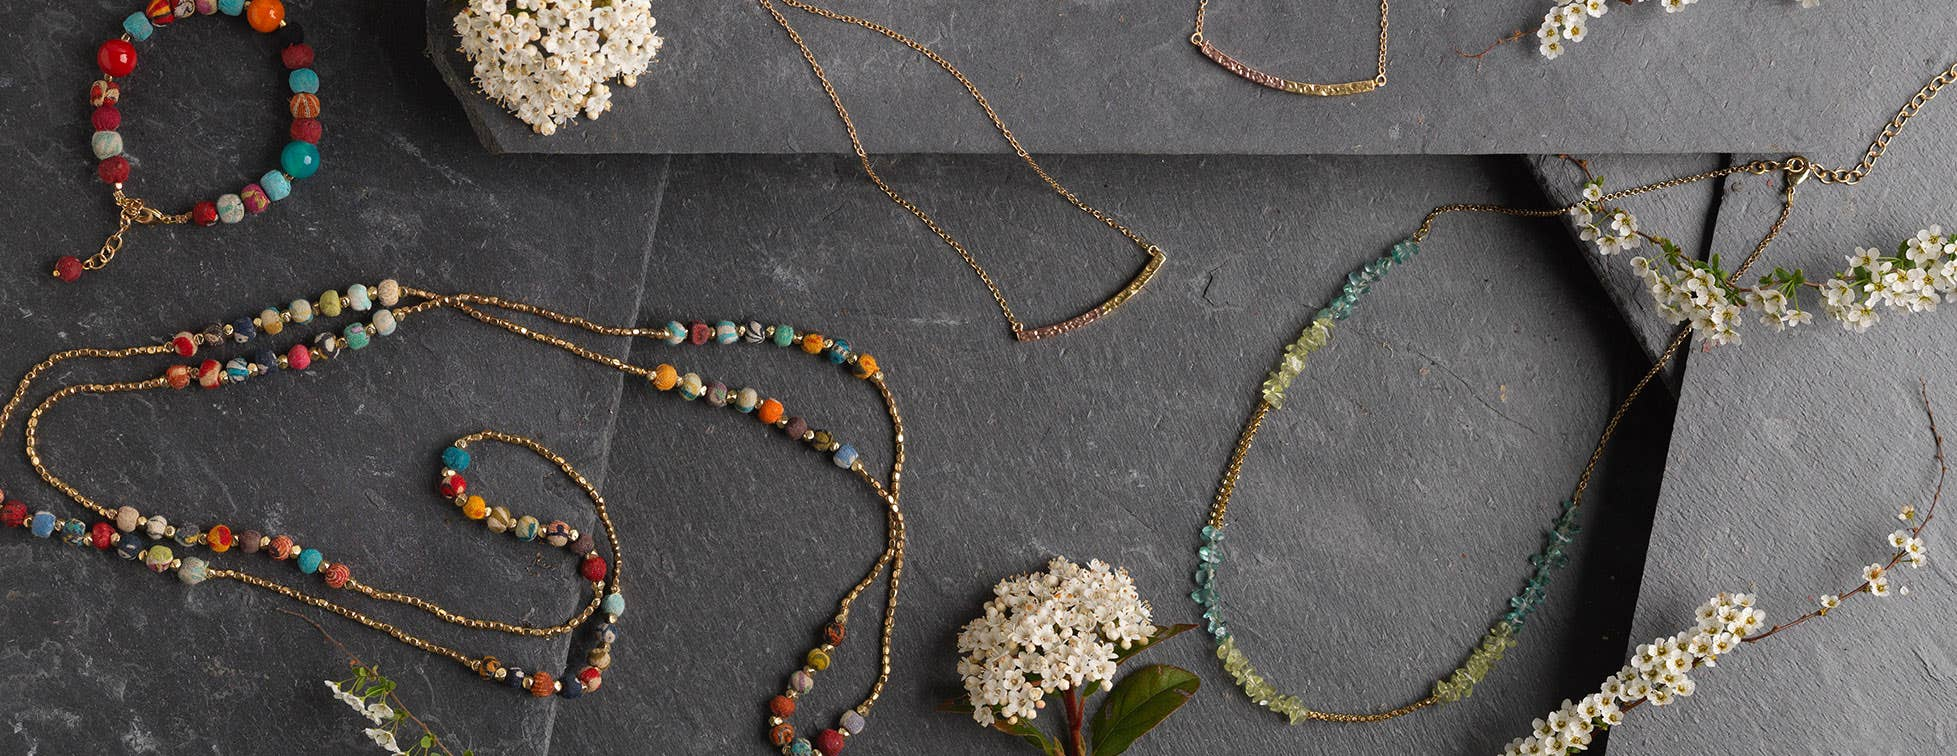 Fair trade, hand crafted jewellery